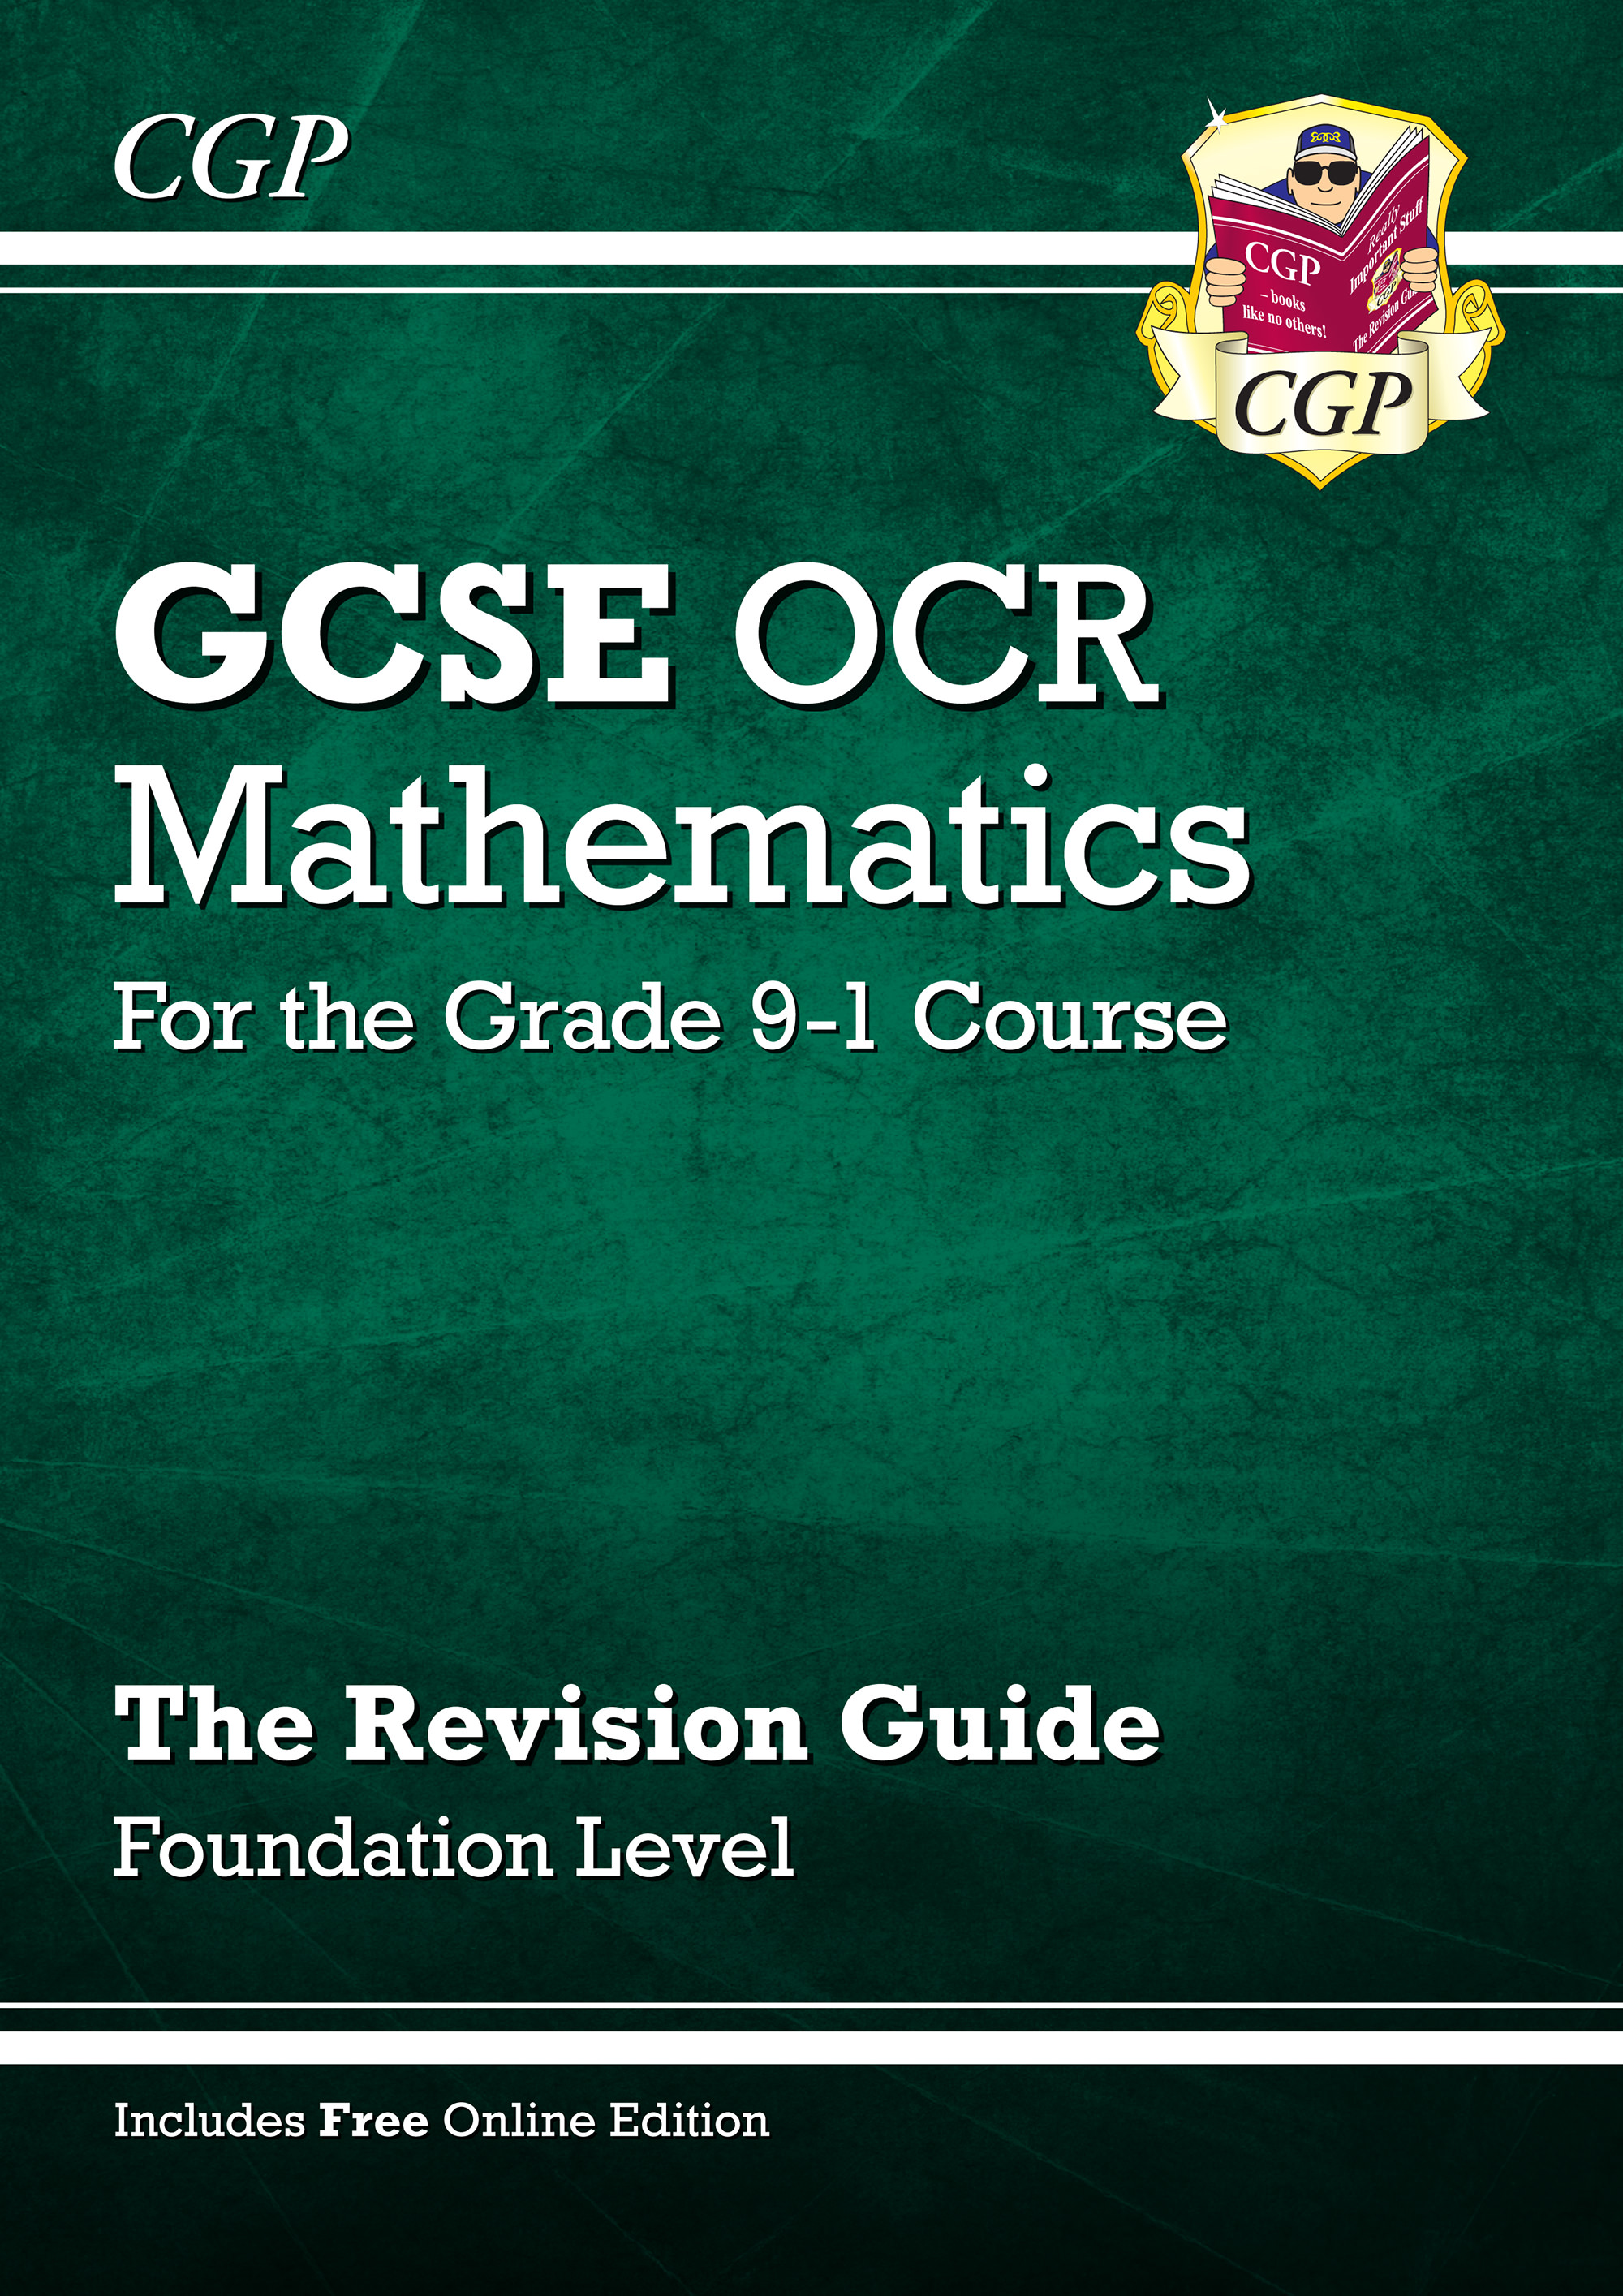 MCFR46 - GCSE Maths OCR Revision Guide: Foundation - for the Grade 9-1 Course (with Online Edition)